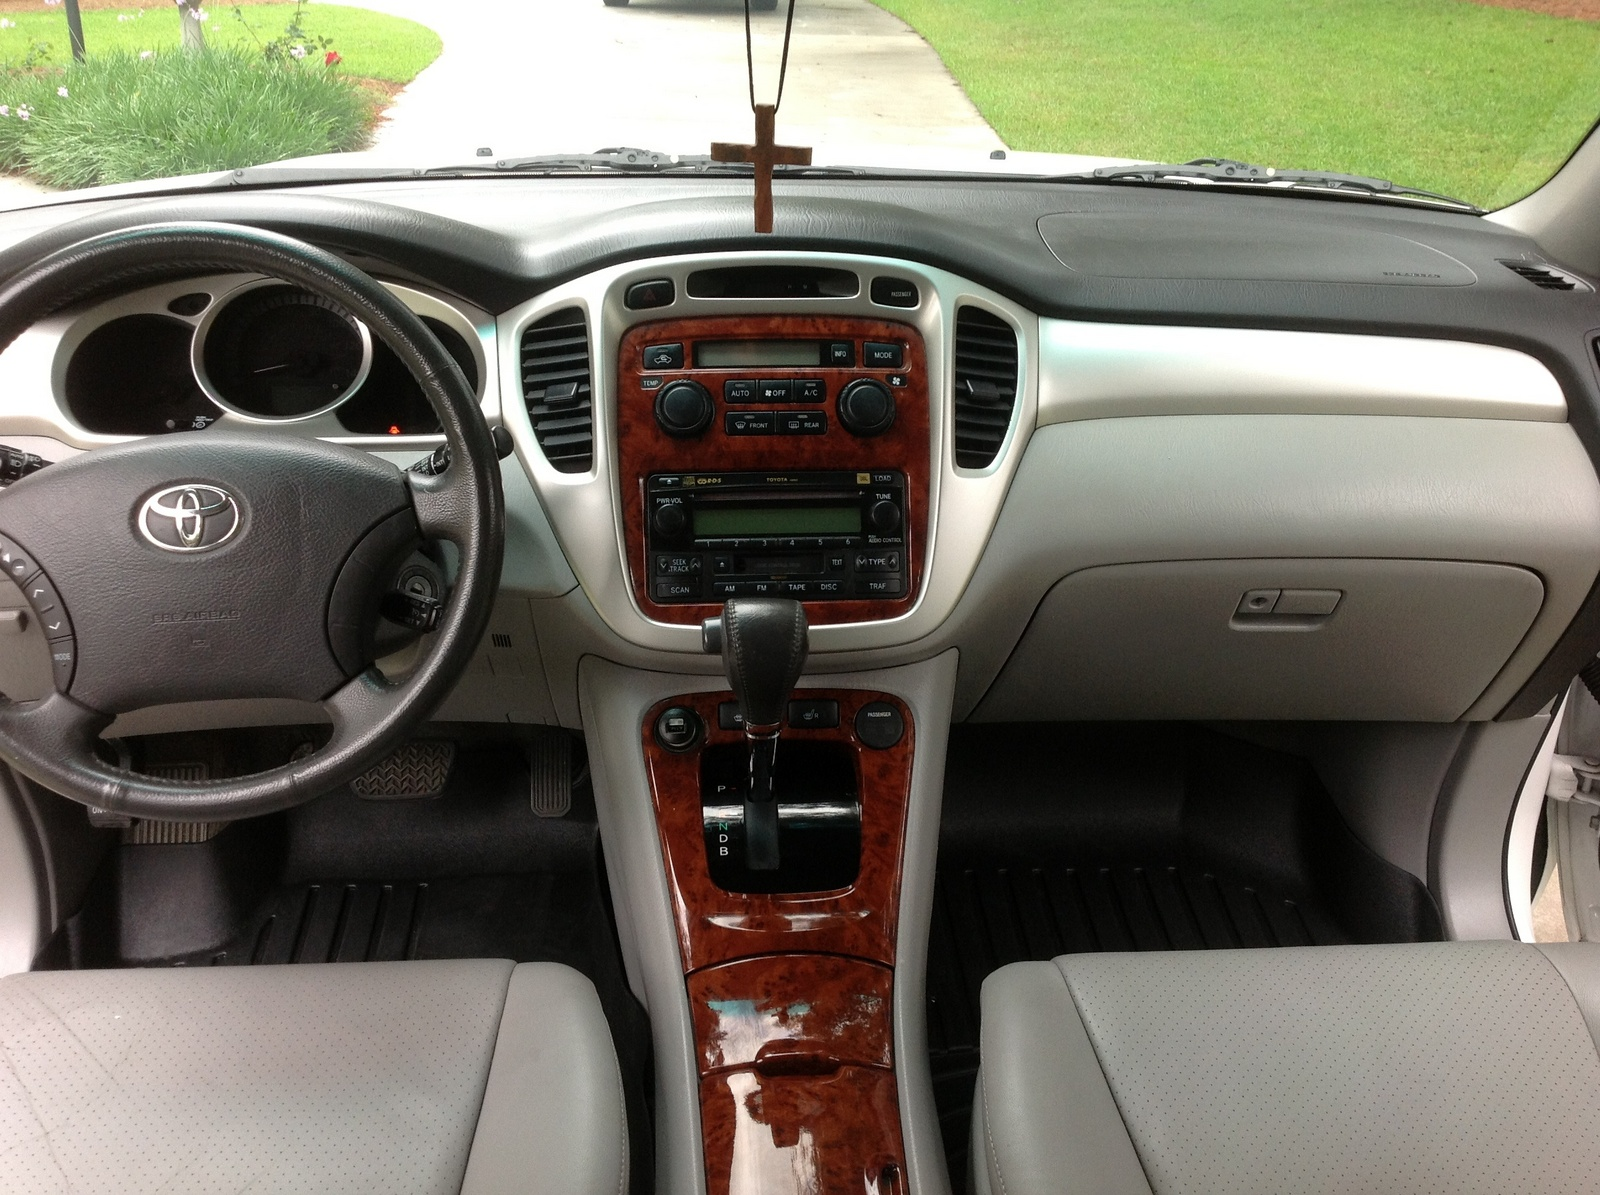 2006 toyota highlander hybrid pictures cargurus. Black Bedroom Furniture Sets. Home Design Ideas